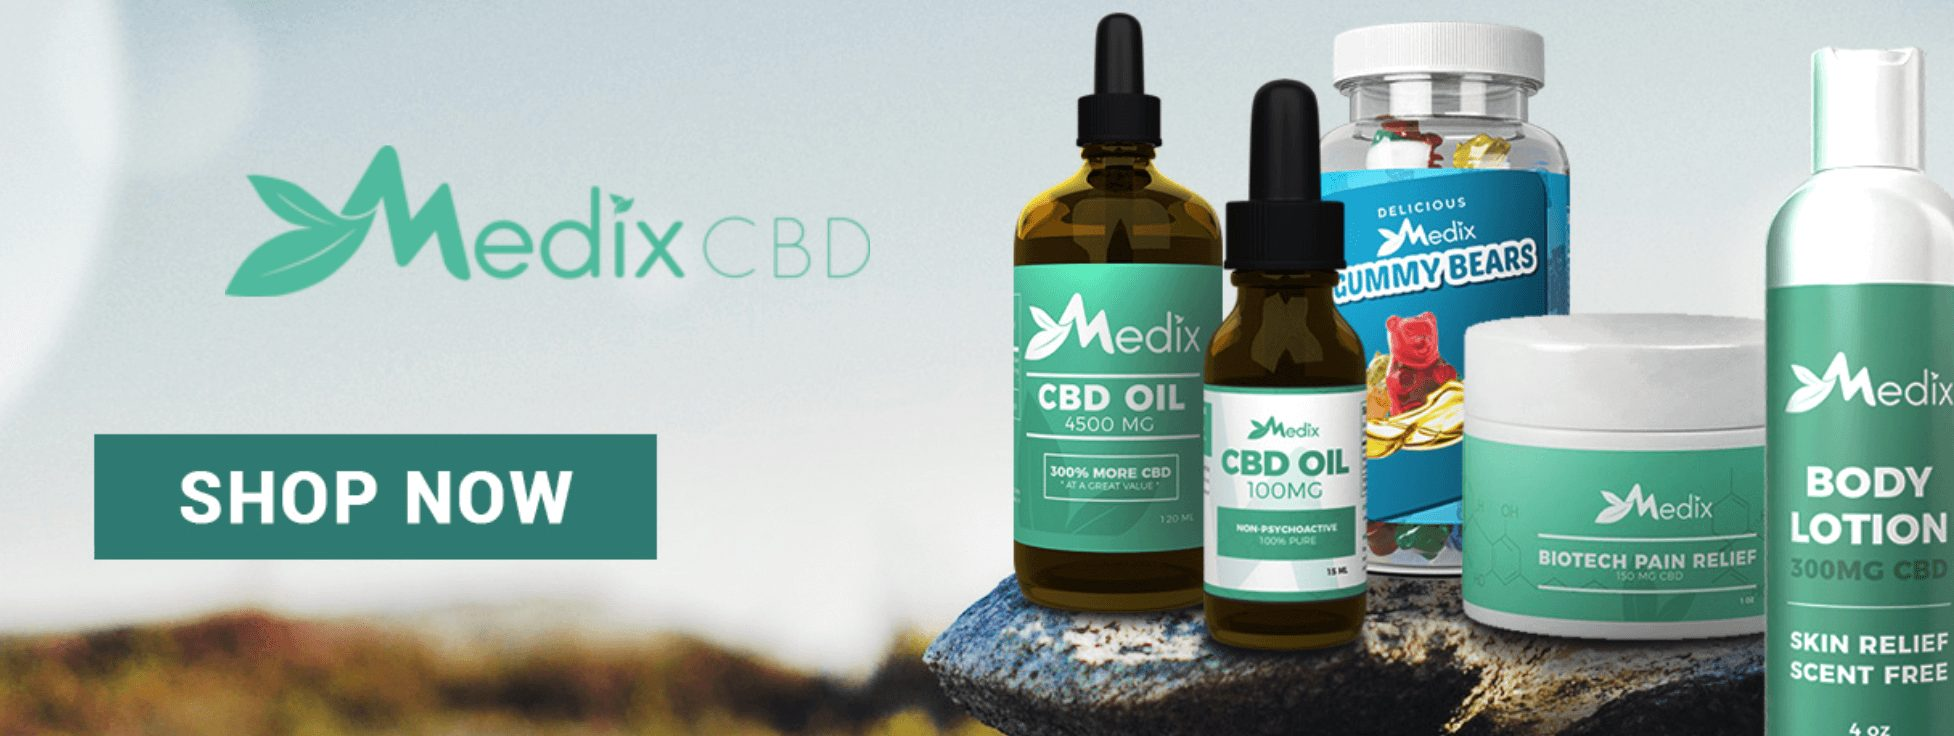 Medix CBD review